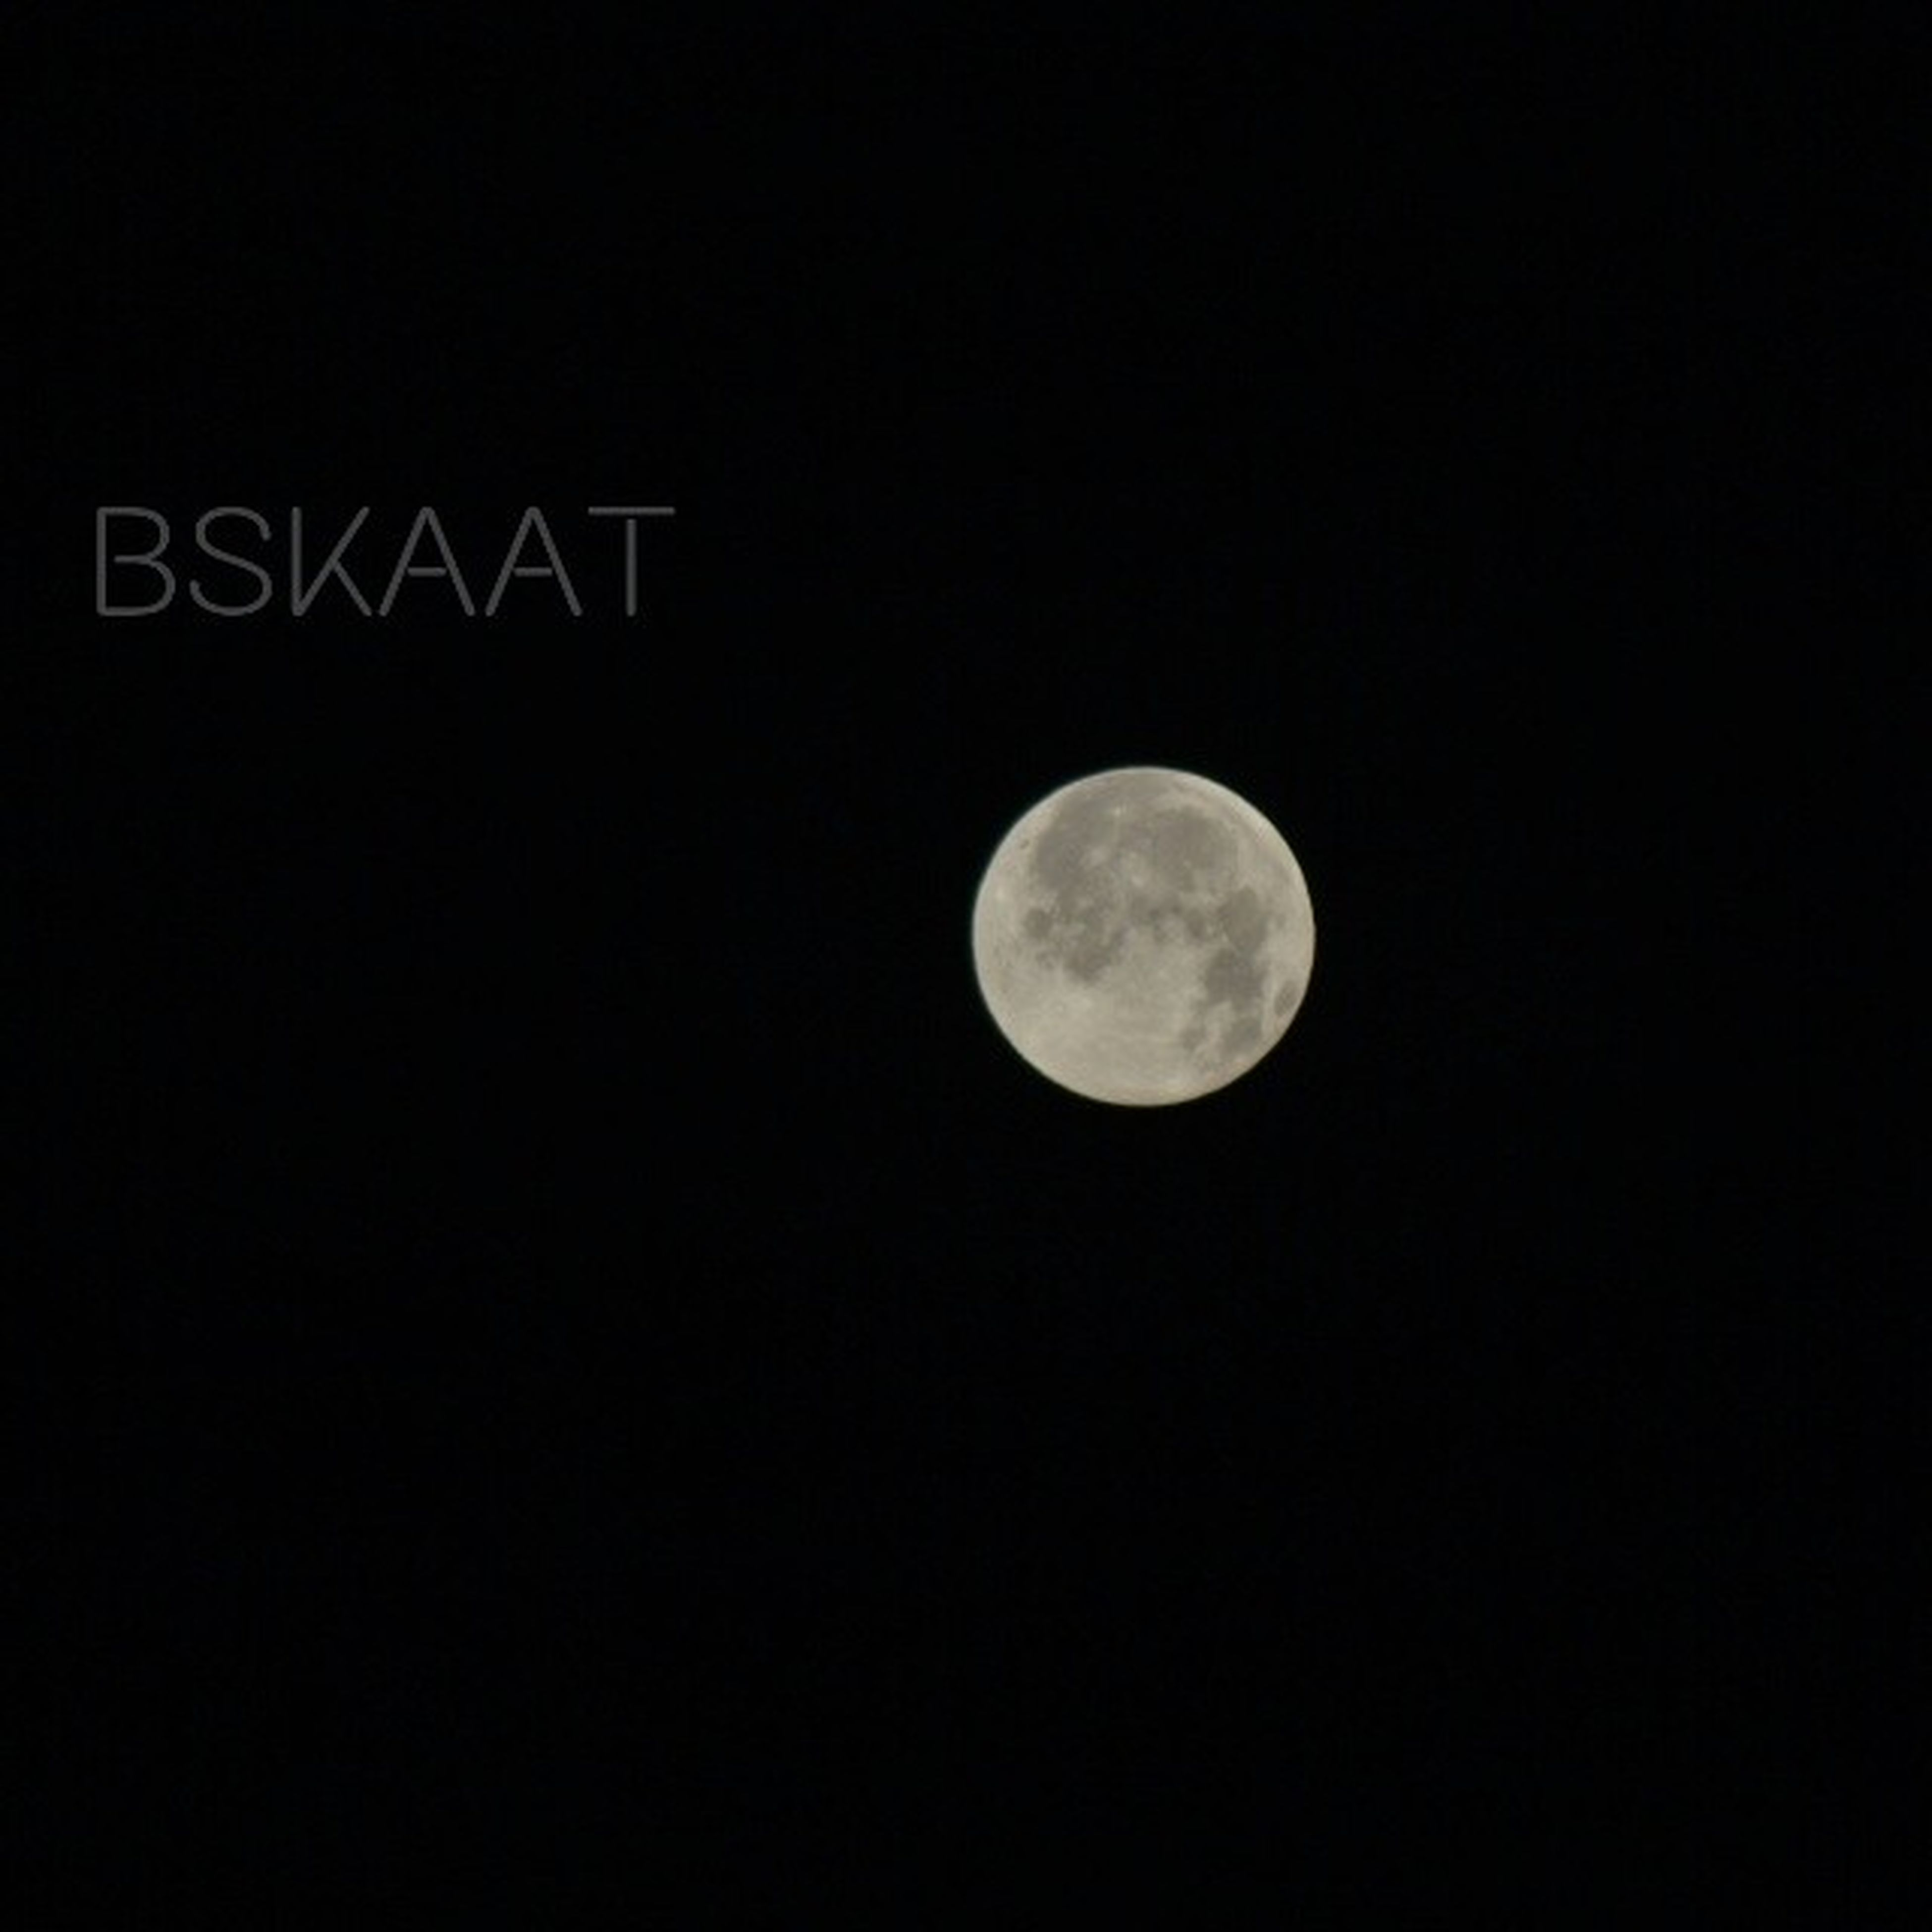 moon, night, astronomy, full moon, circle, copy space, planetary moon, clear sky, moon surface, tranquil scene, tranquility, scenics, dark, low angle view, beauty in nature, space exploration, discovery, nature, sky, sphere